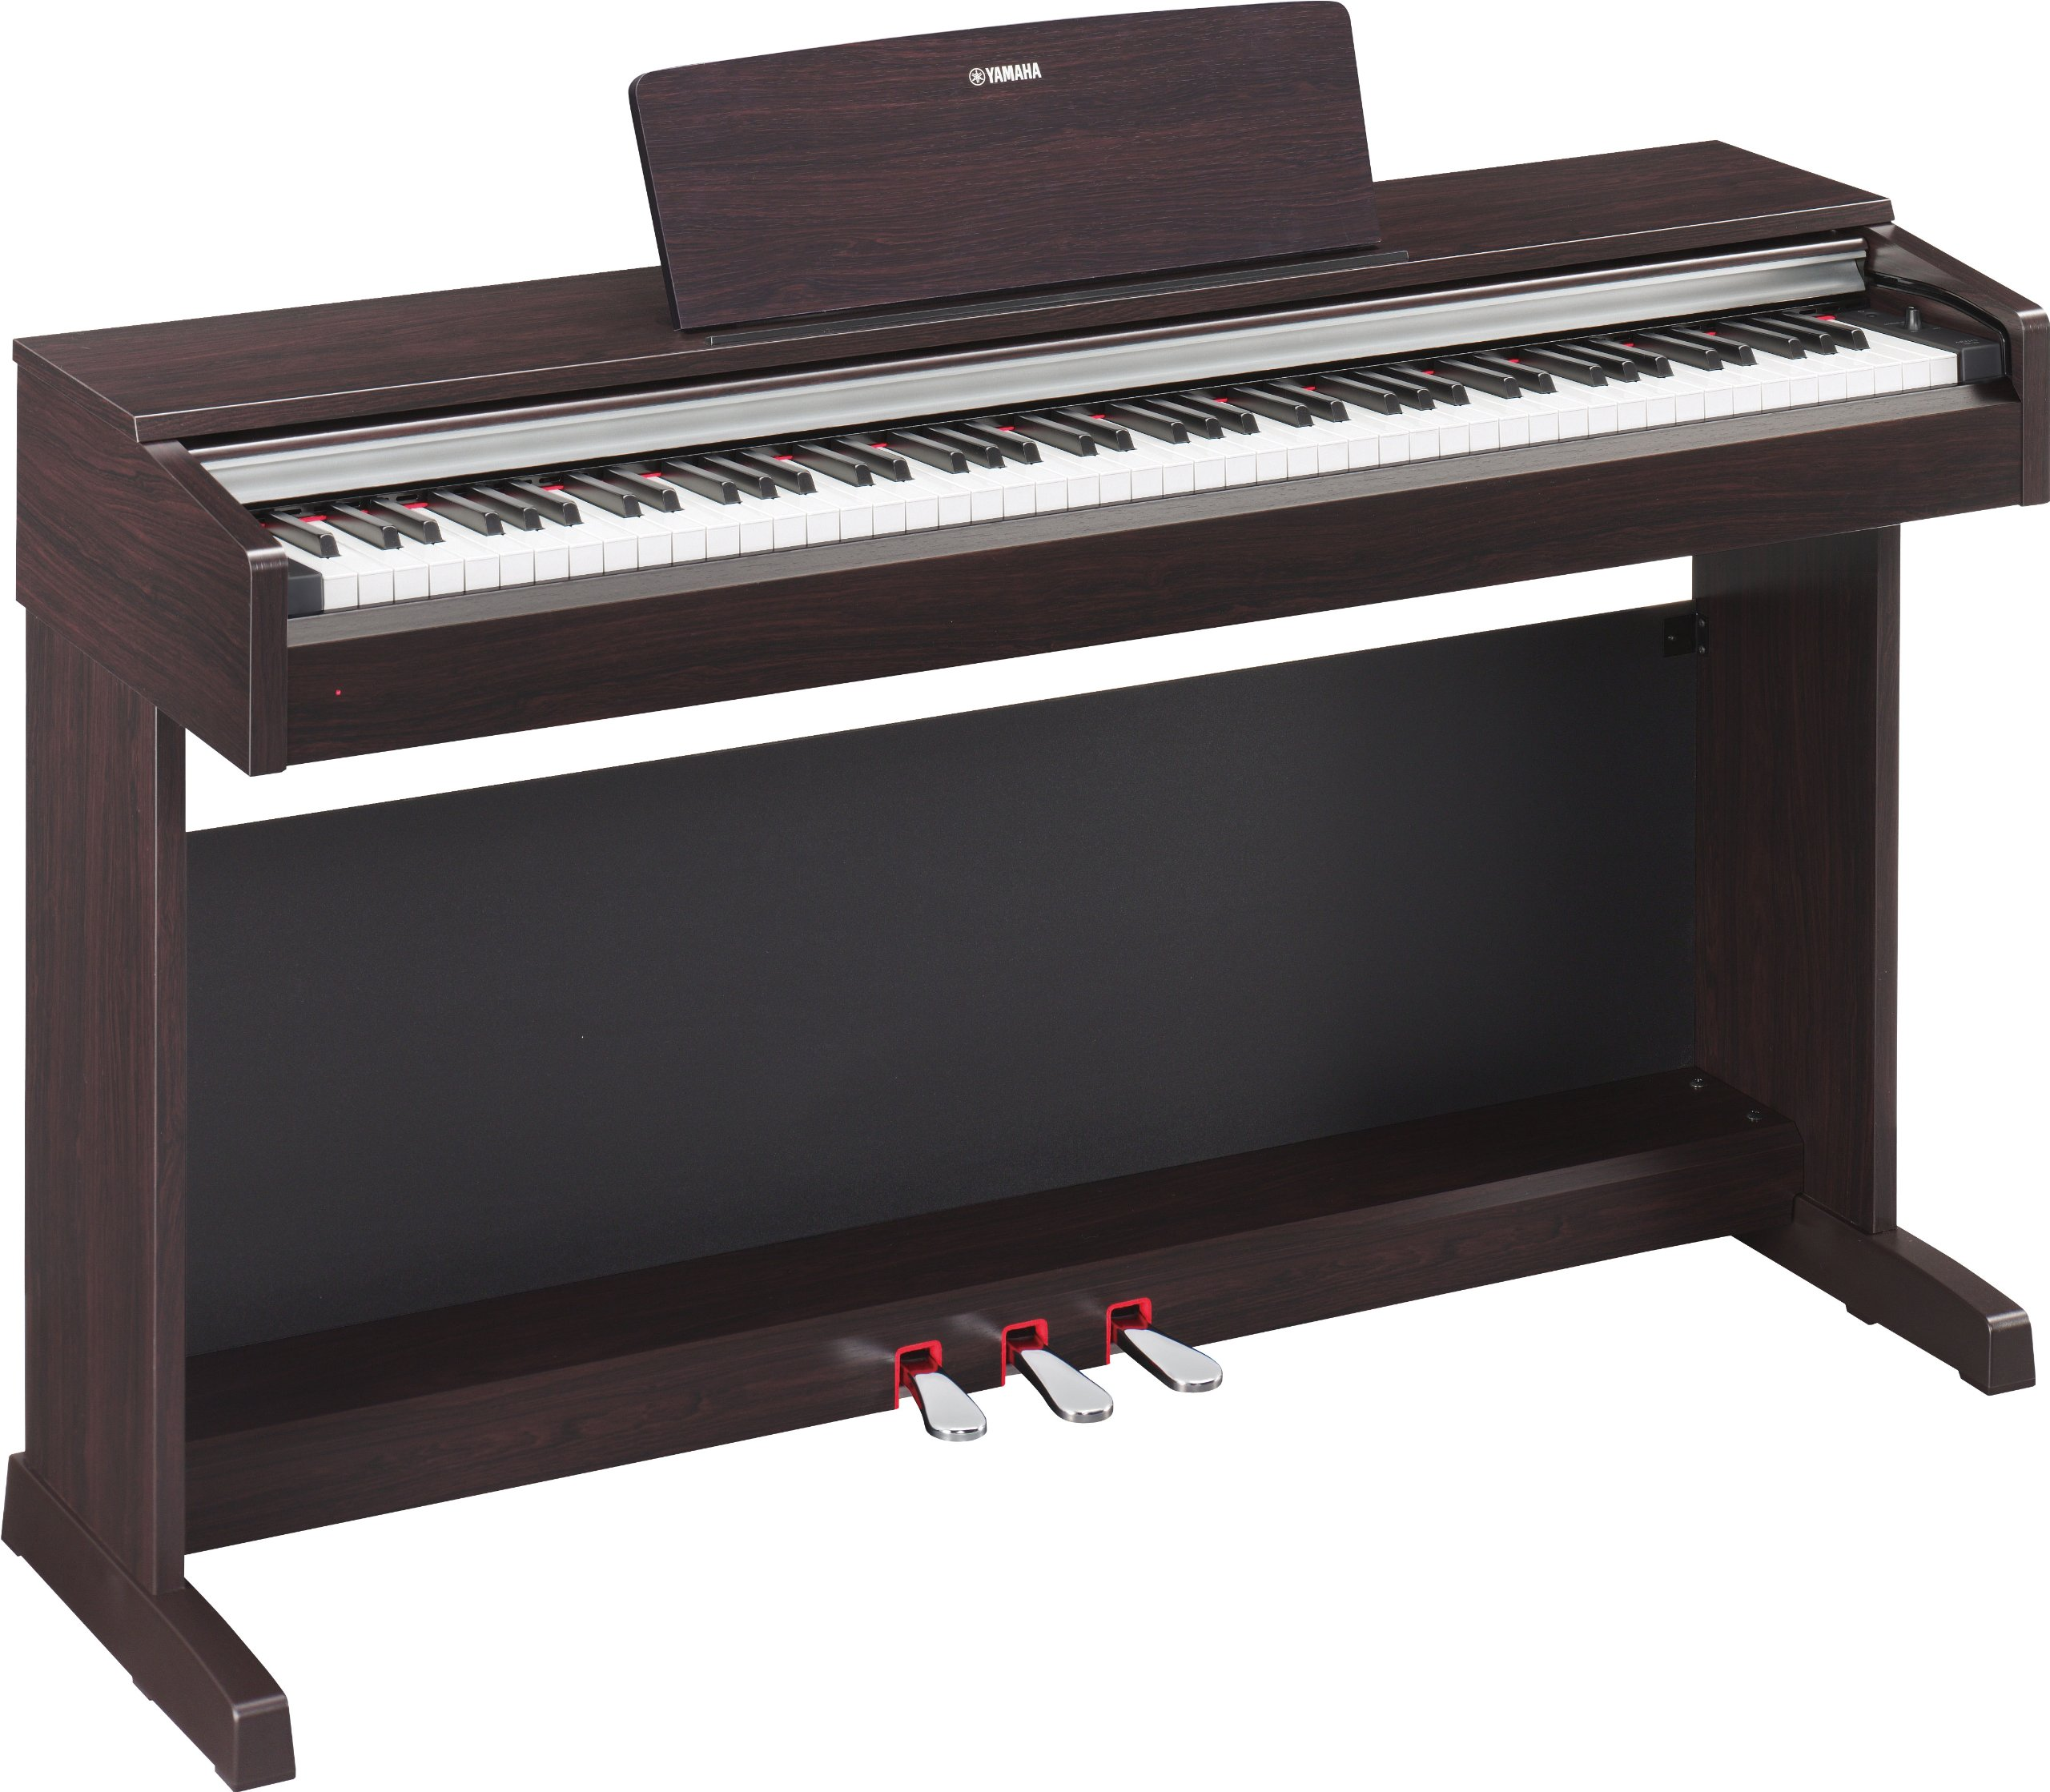 Yamaha YDP142R Arius Series Traditional Console Digital Piano with Bench, Rosewood (OLD MODEL) by YAMAHA